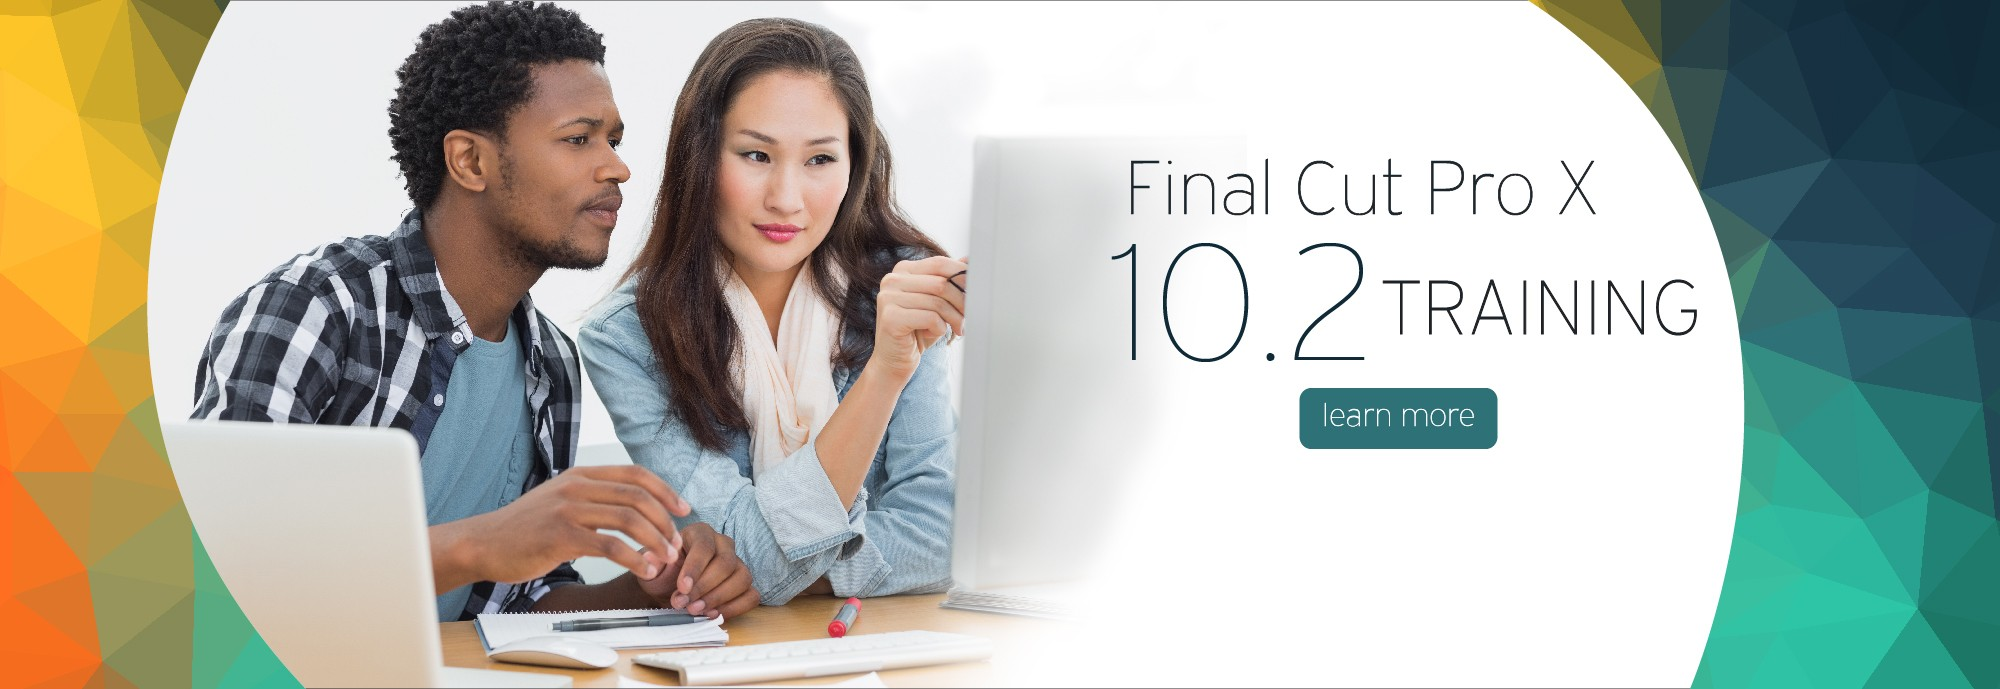 Final Cut Pro 10.2 Training